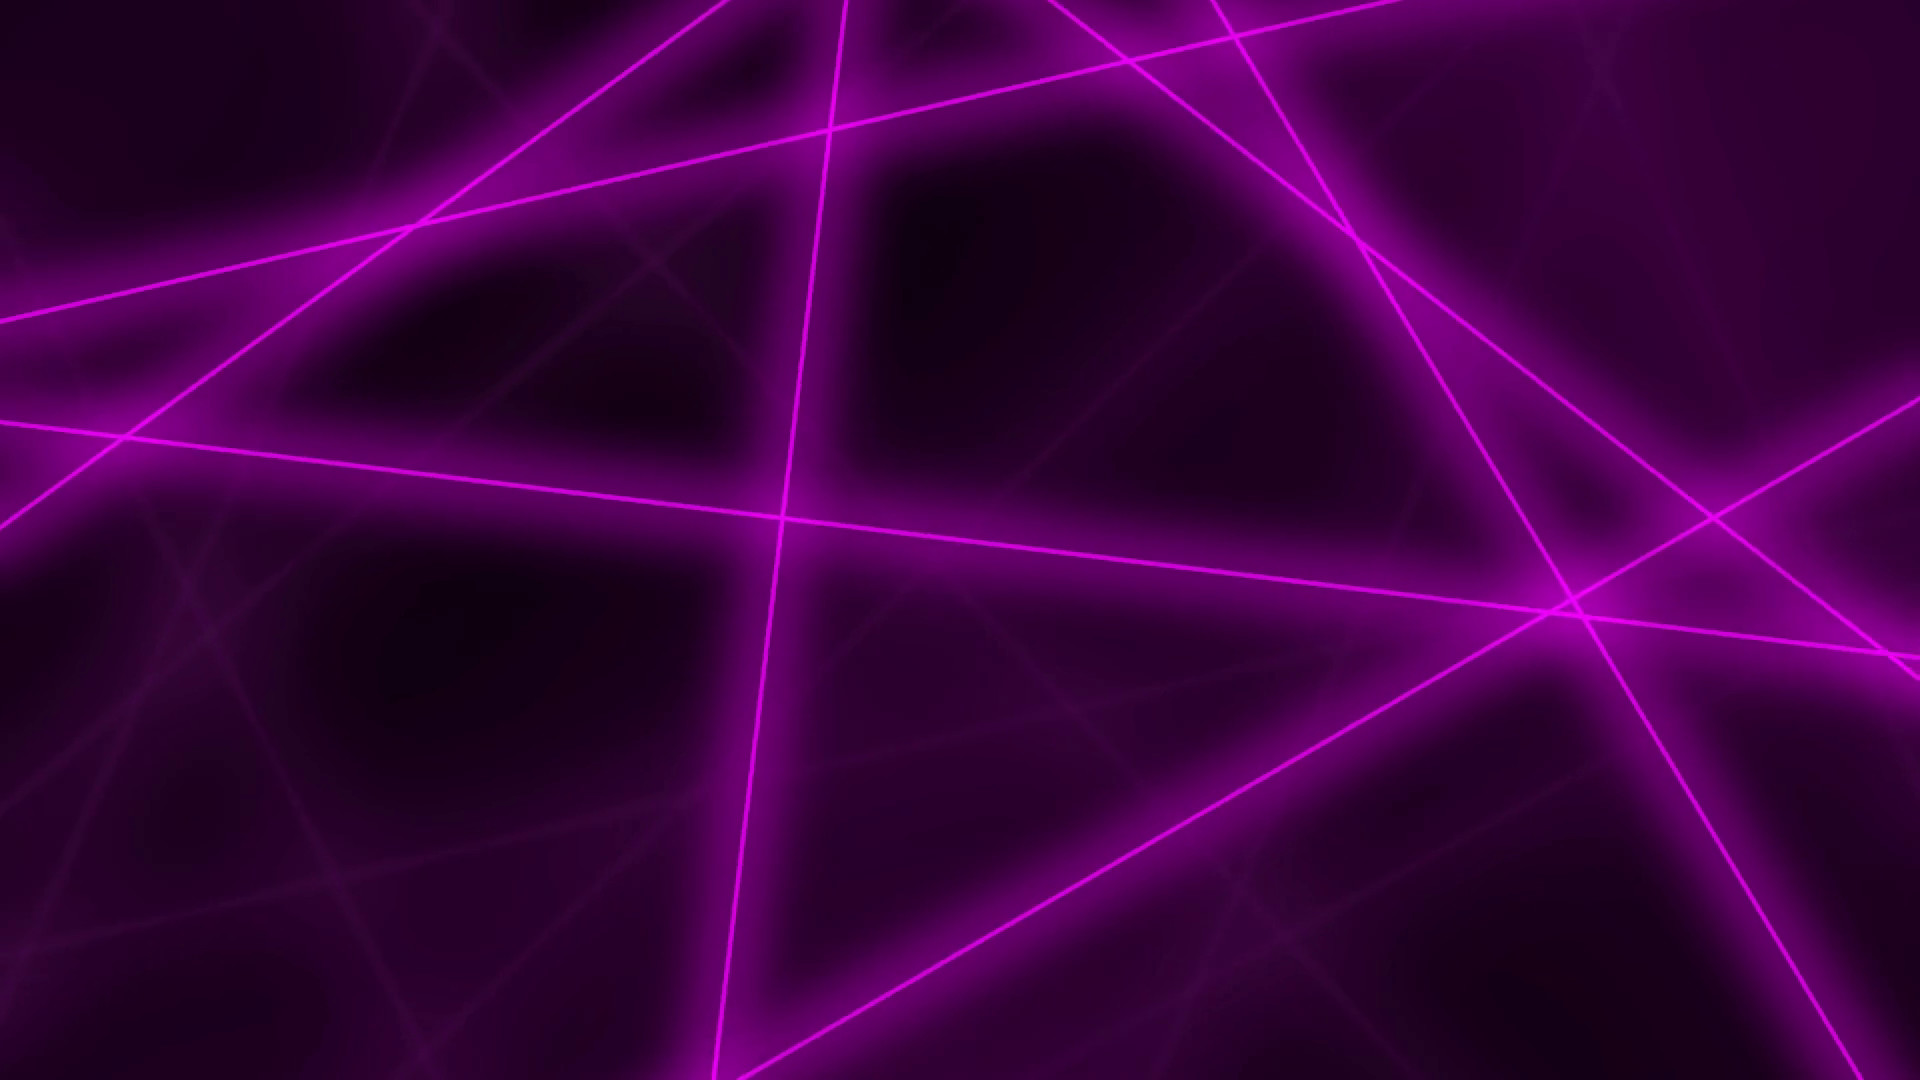 Abstract Purple Background (49+ images)